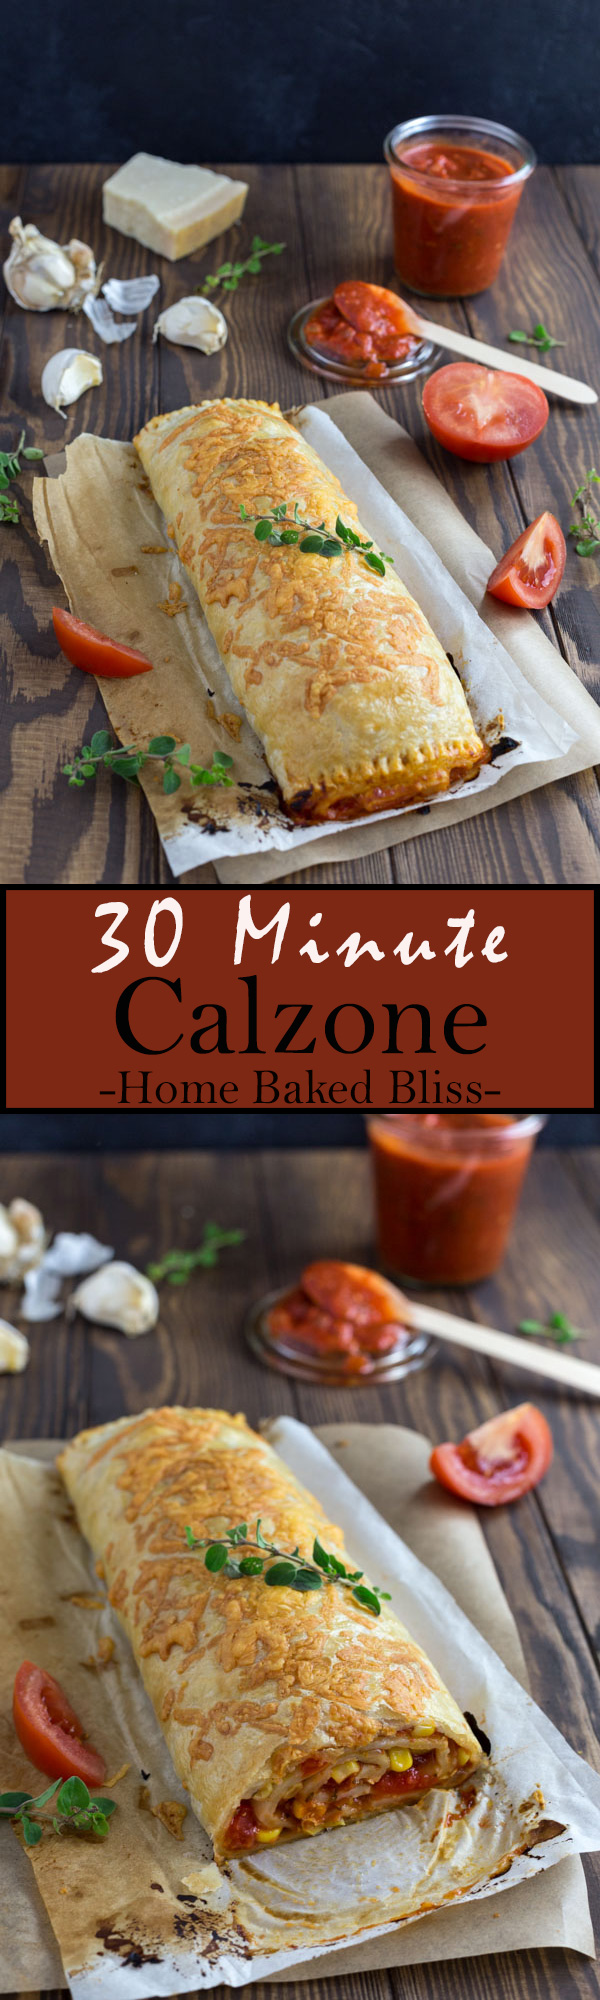 calzone, calzone recipe, easy calzone, easy calzone recipe, quick calzone, quick calzone recipe, best calzone, best calzone recipe, homemade calzone, homemade calzone recipe, how to make calzone, vegetarian calzone, vegetarian calzone recipe, recipe with puff pastry, puff pastry pizza, puff pastry pizza recipe, puff pastry calzone recipe, puff pastry calzone